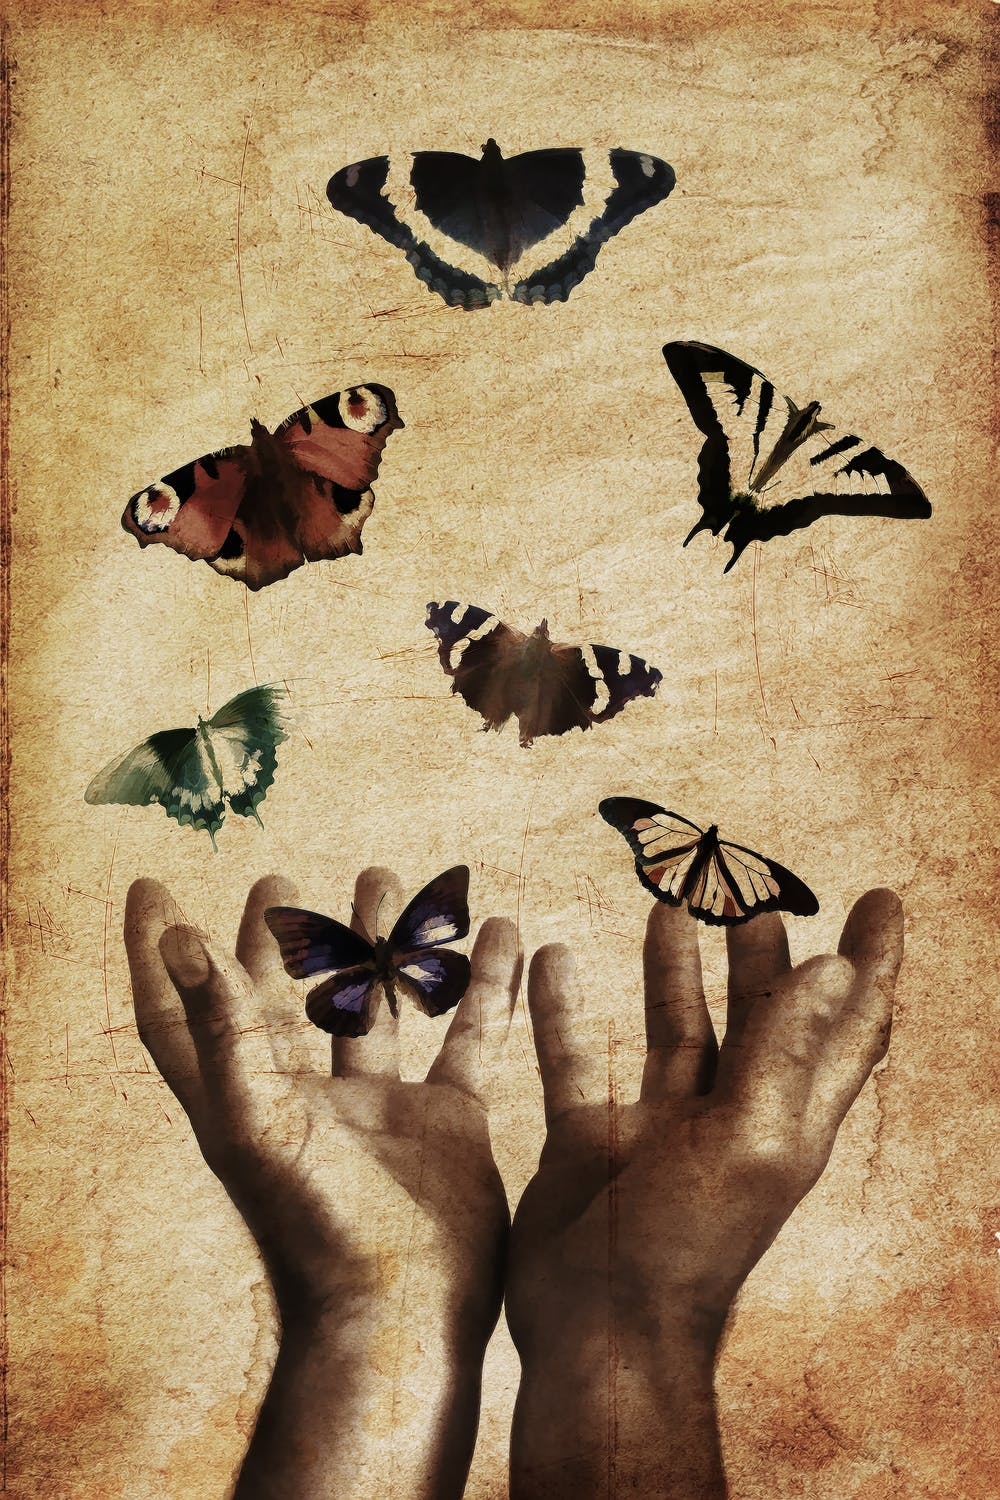 A drawing of a set of hands freeing vibrant butterflies back into the air to continue on with life.